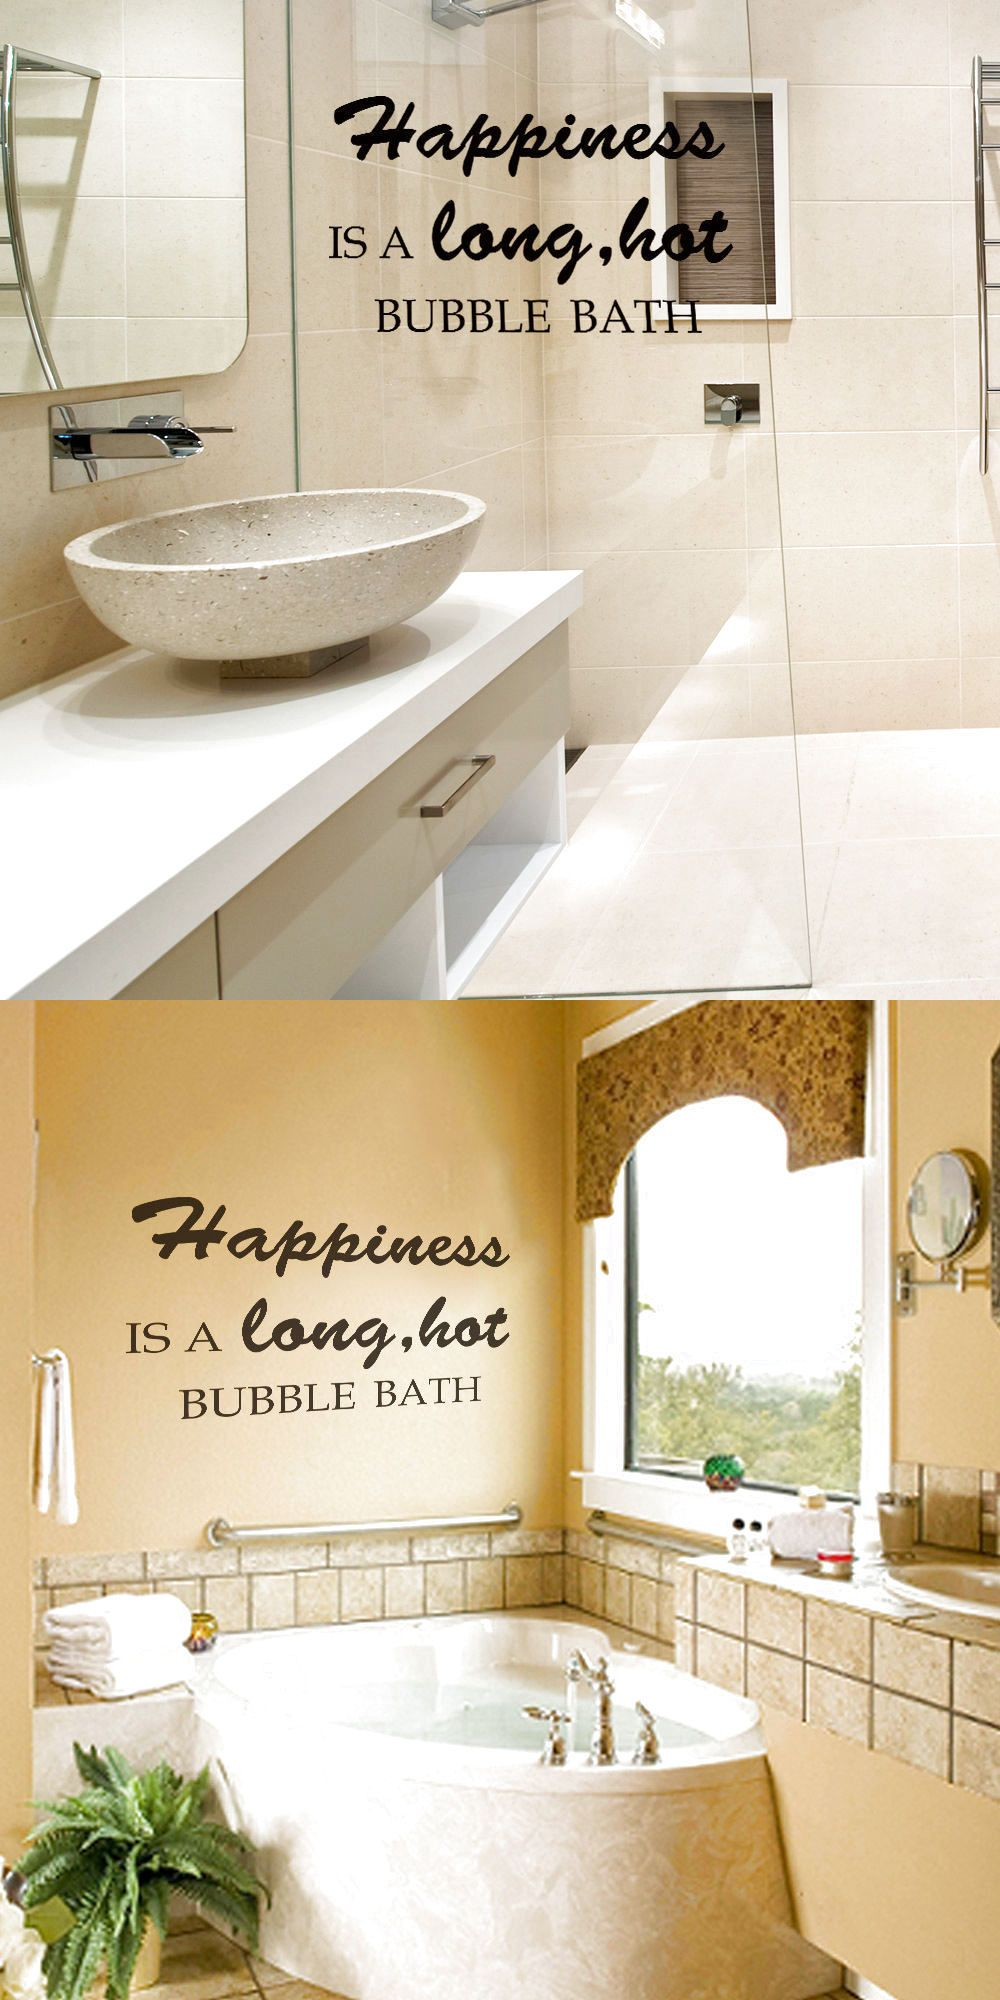 Bathroom wall decal happiness bubble bath quote shower room vinyl